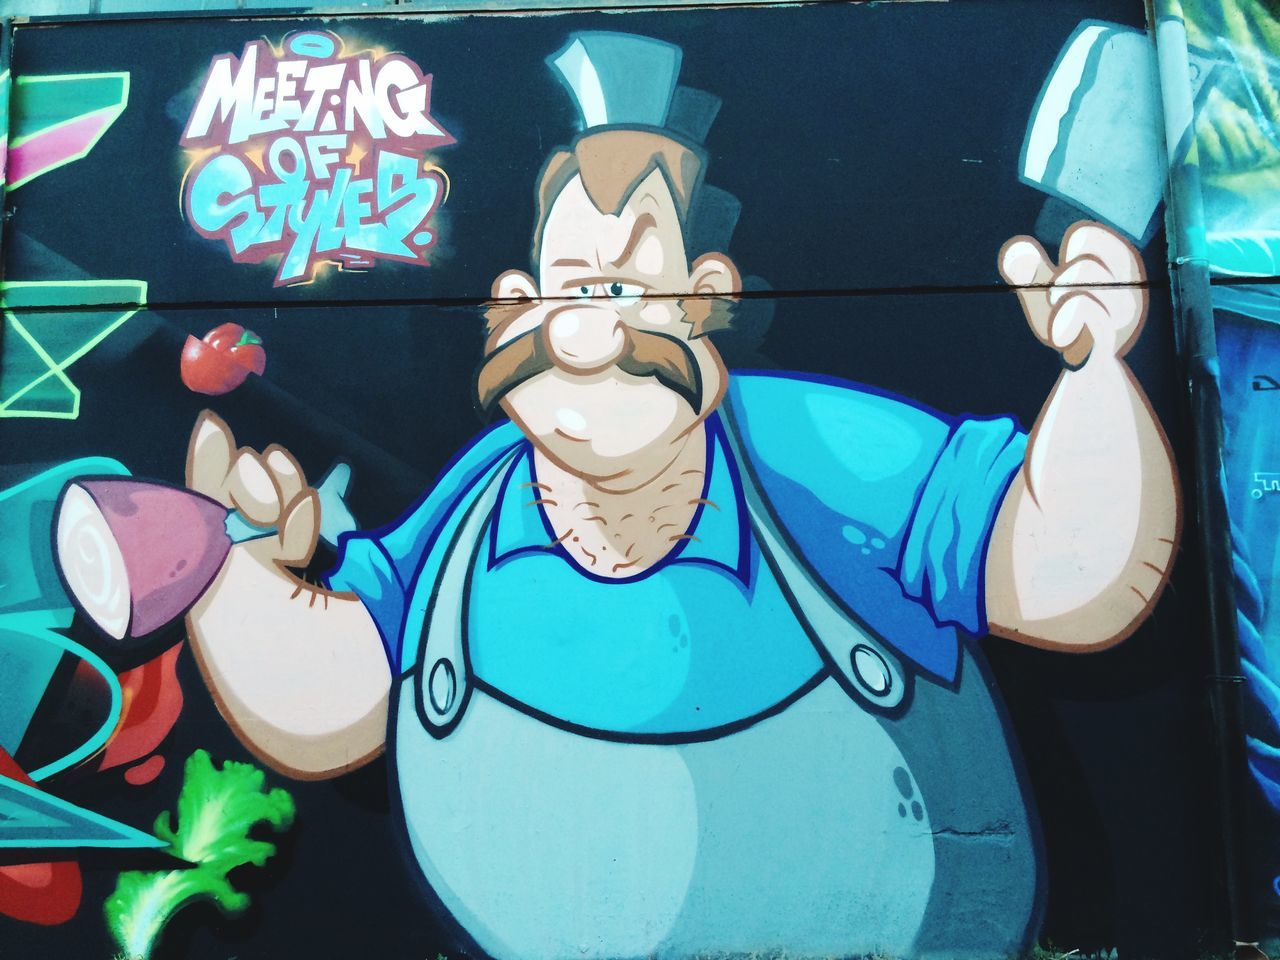 Follow me on Instagram: Alber_tino_ 📷📷📷 •Meeting of styles 2016 Trezzano sul Naviglio• #meetingofstiles #streetart #murales #art #picoftheday #photo #photography #amateur #photographer #fun #followme #photoporn